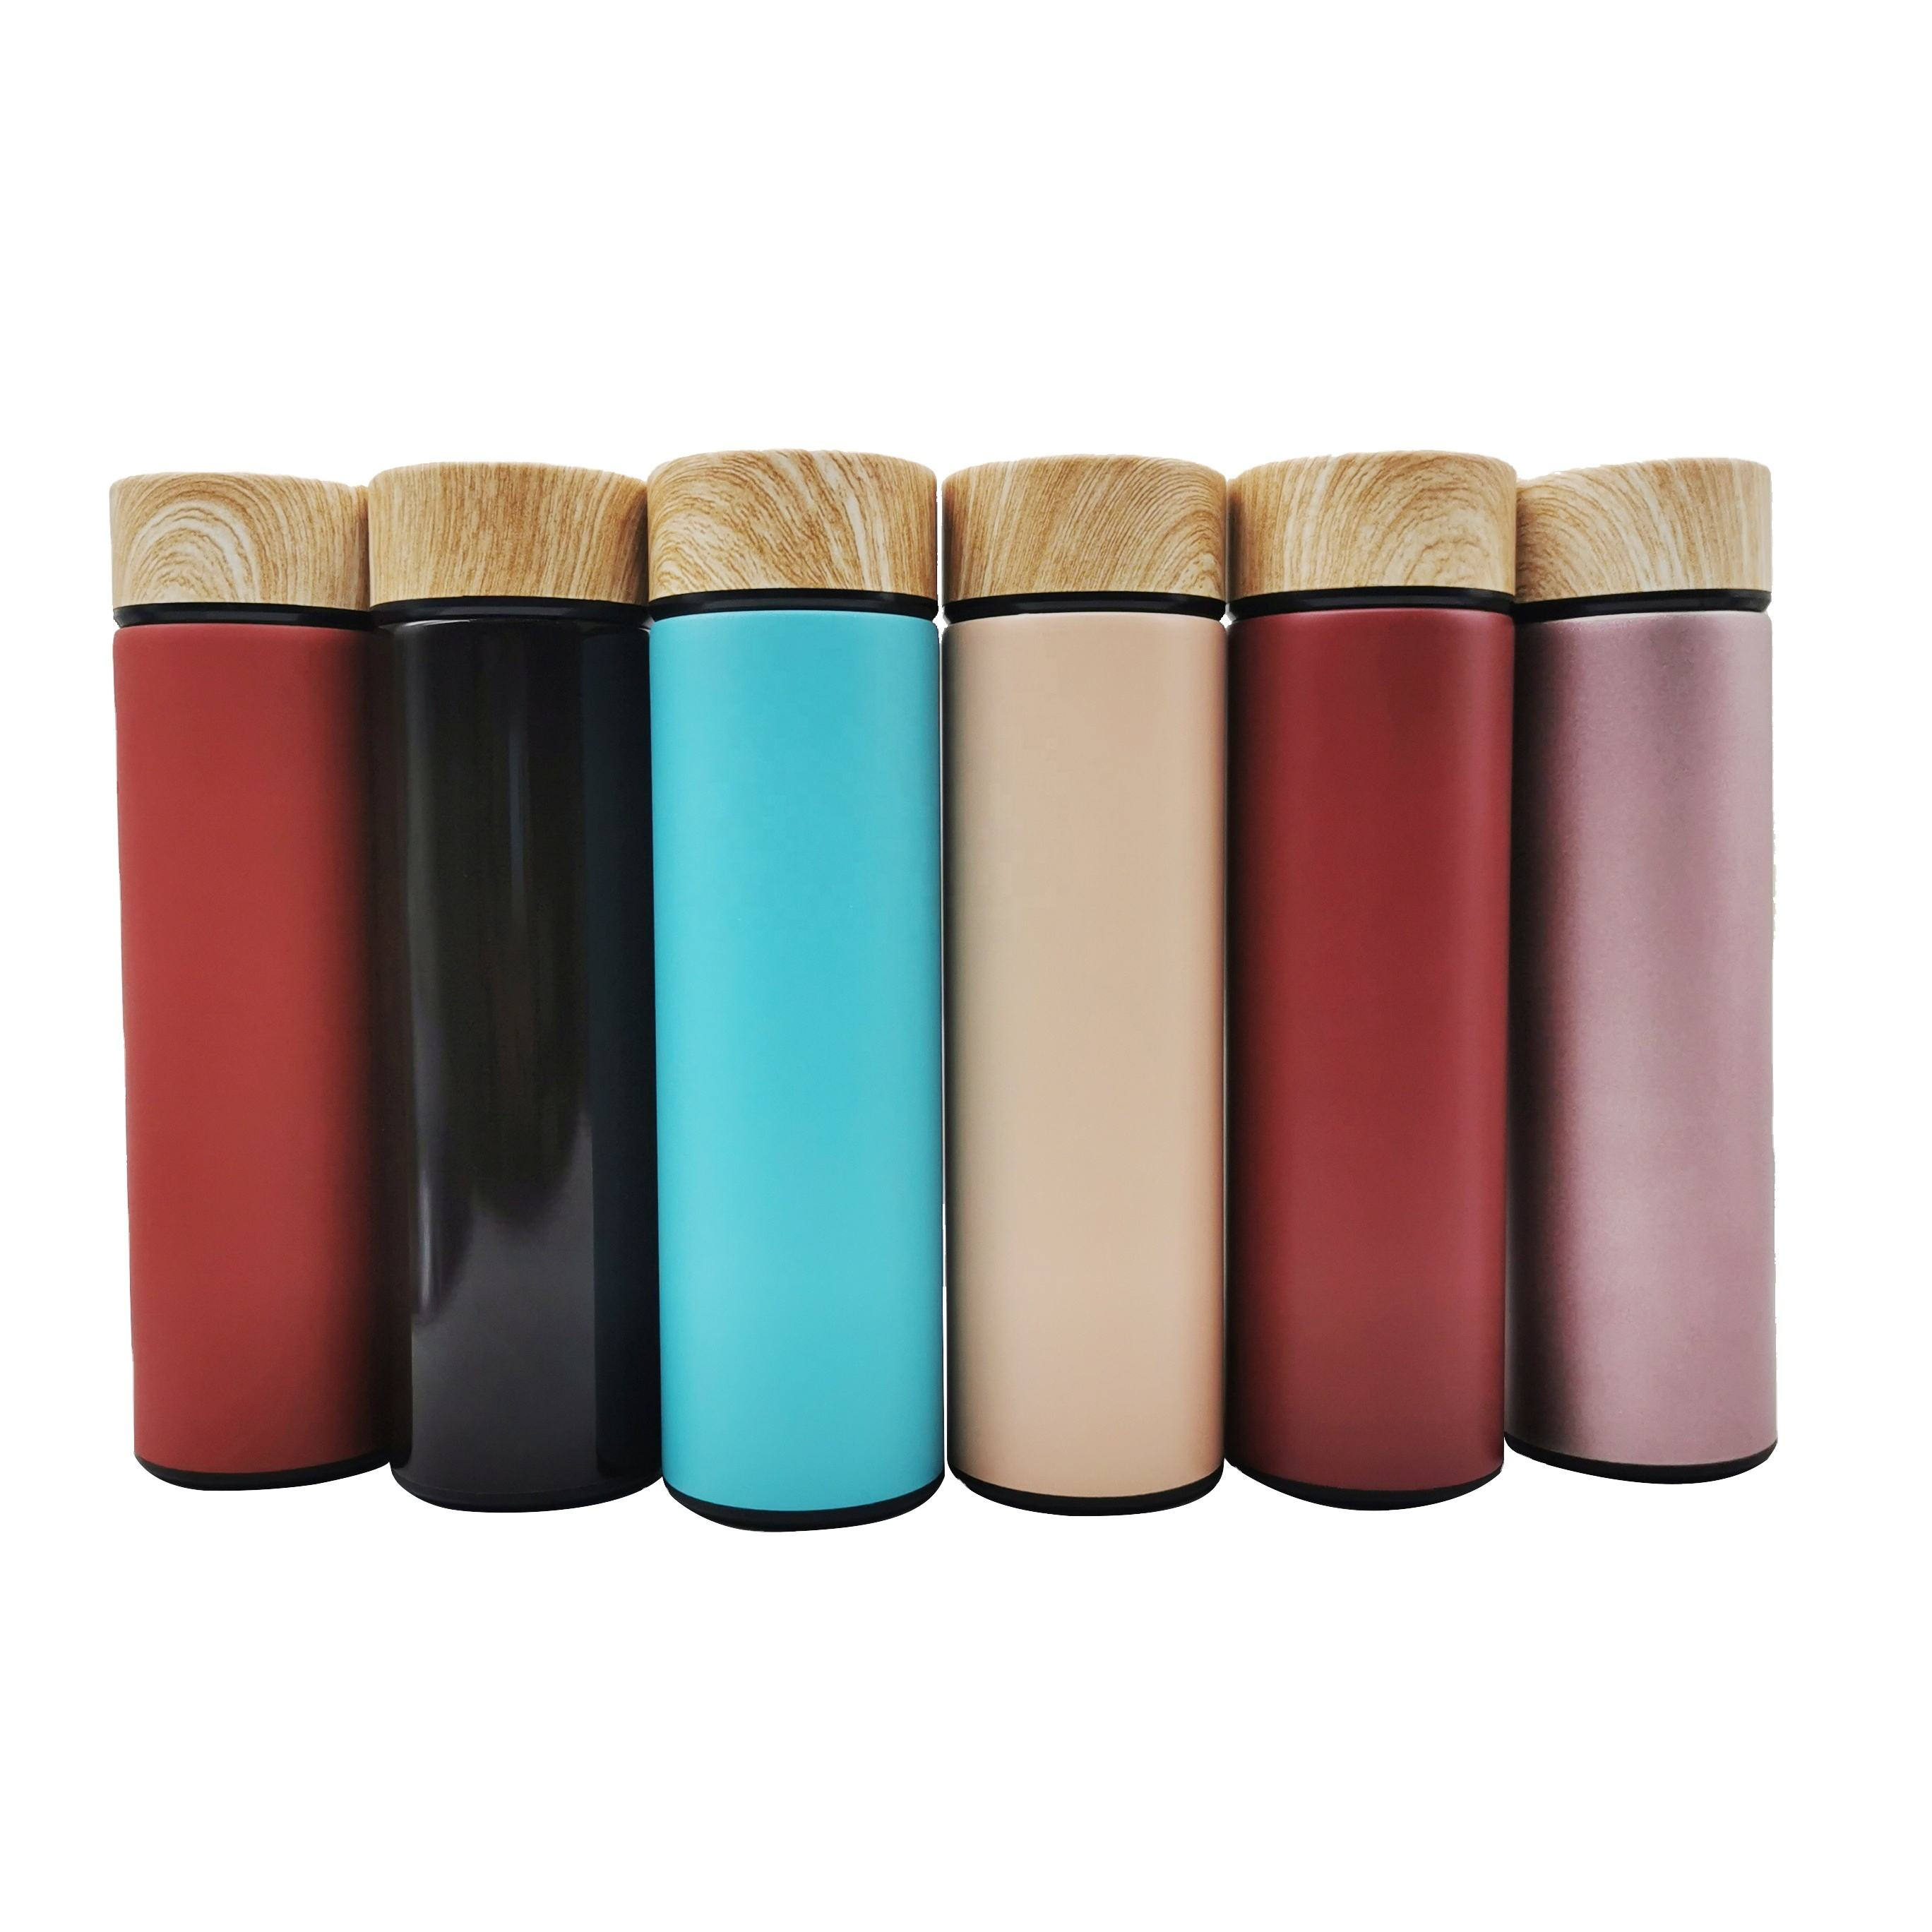 New Wooden Color Lid Stainless Steel Double Wall Insulated Vacuum Flask with Tea Infuser Leakproof Shaker Water Bottle